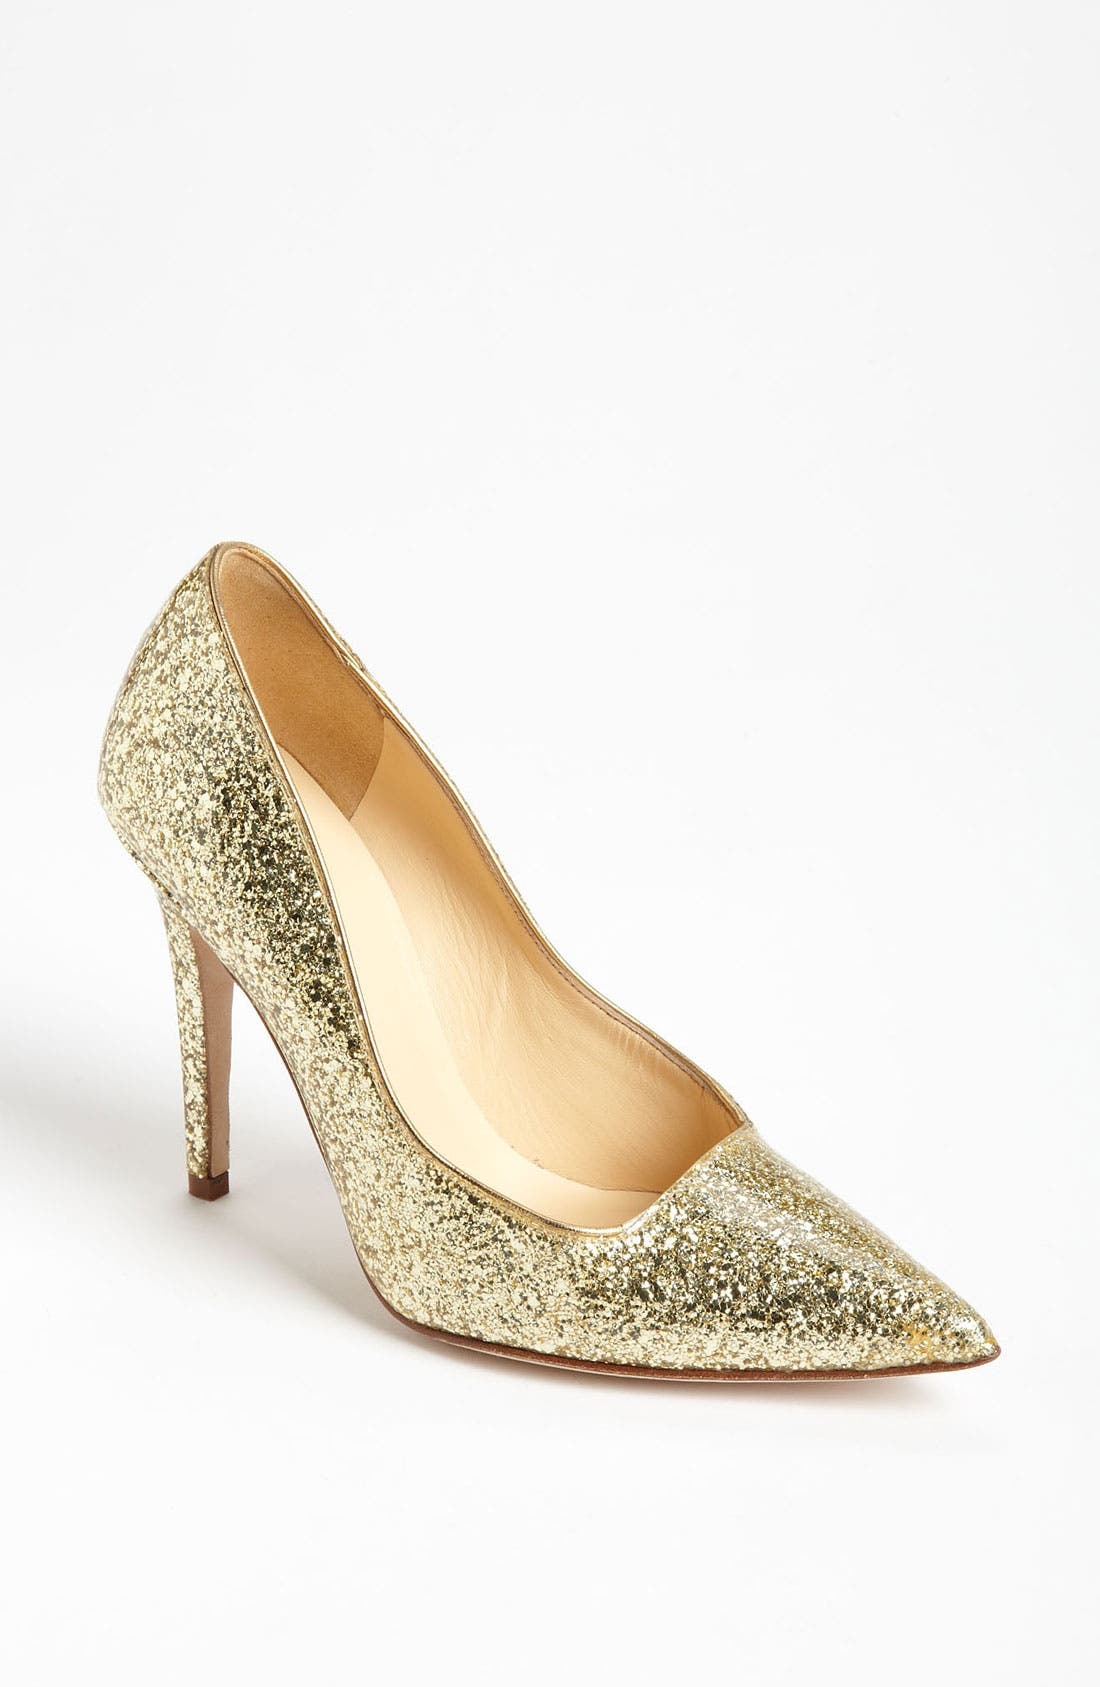 Alternate Image 1 Selected - kate spade new york 'lollipop' pump